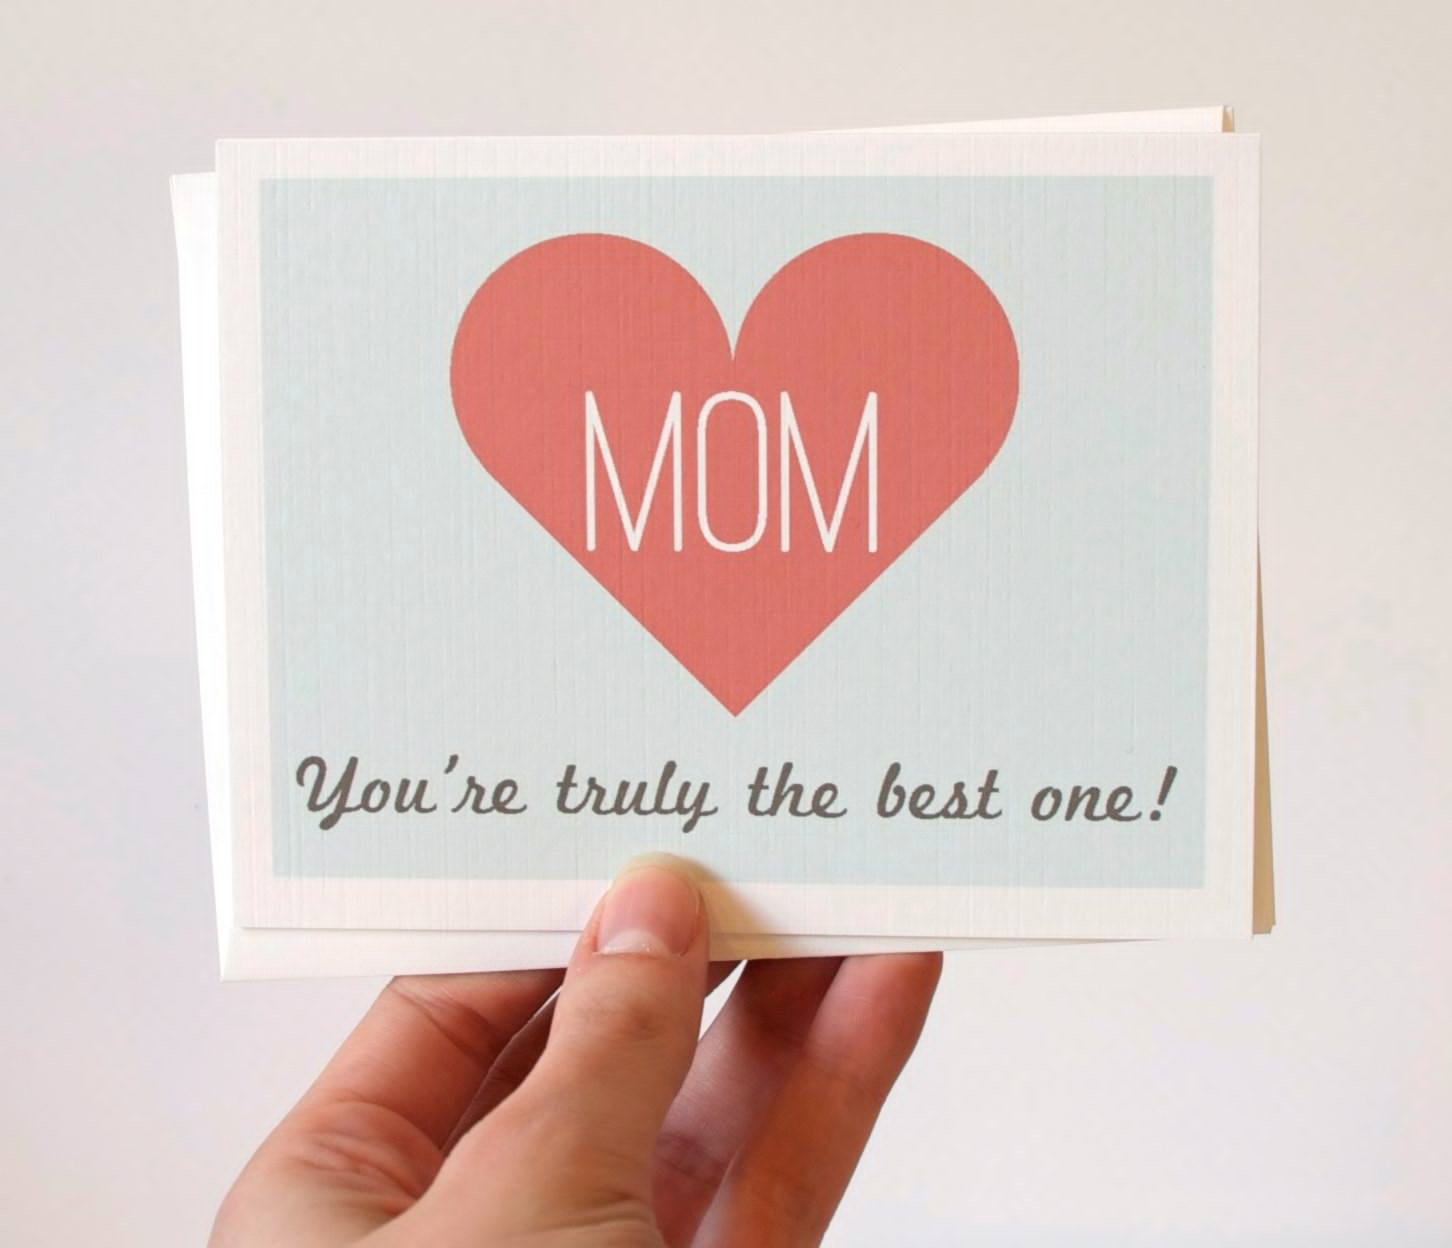 Popular Day Card Ideas Card Making World Mor S Day Card Ideas From Preschoolers Mor S Day Card Ideas Homemade ideas Mothers Day Card Ideas